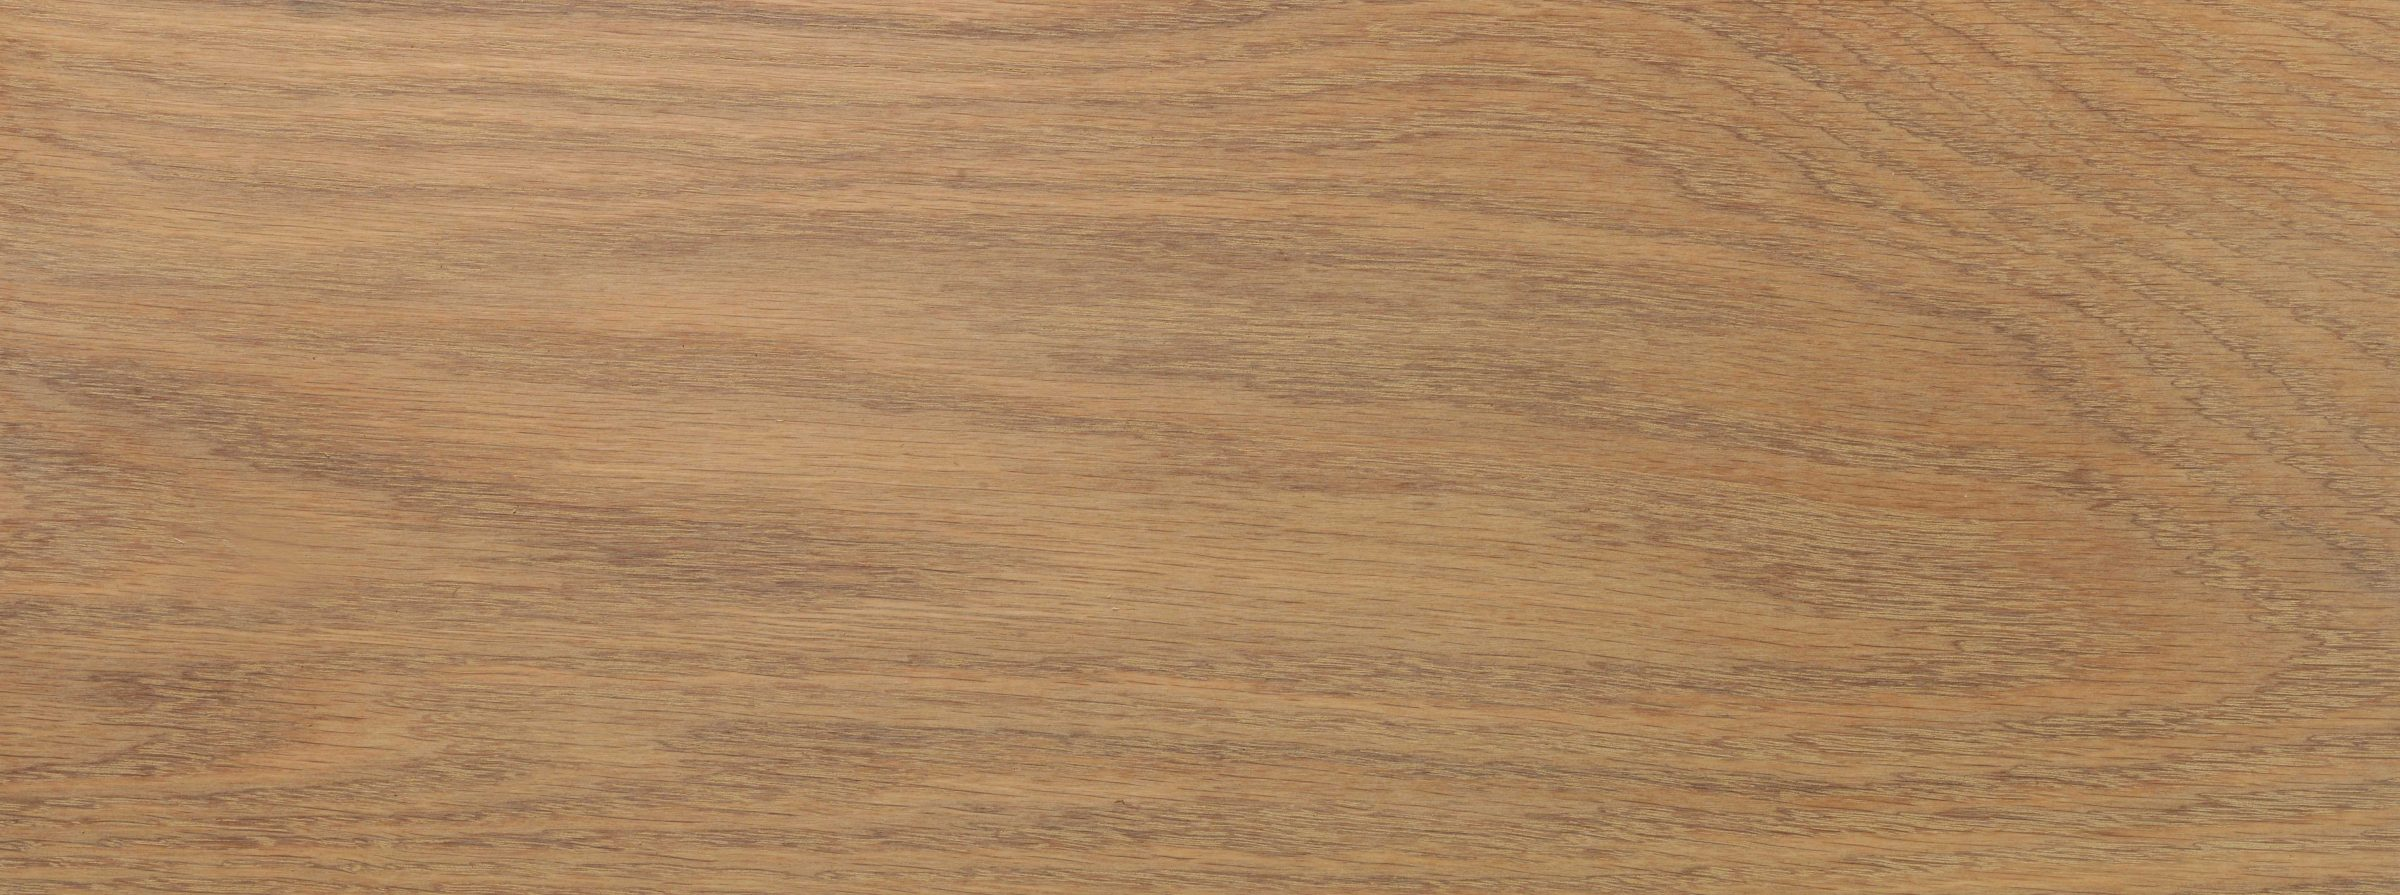 Oak 14mm engineered board, Sawn, 1sqm pack